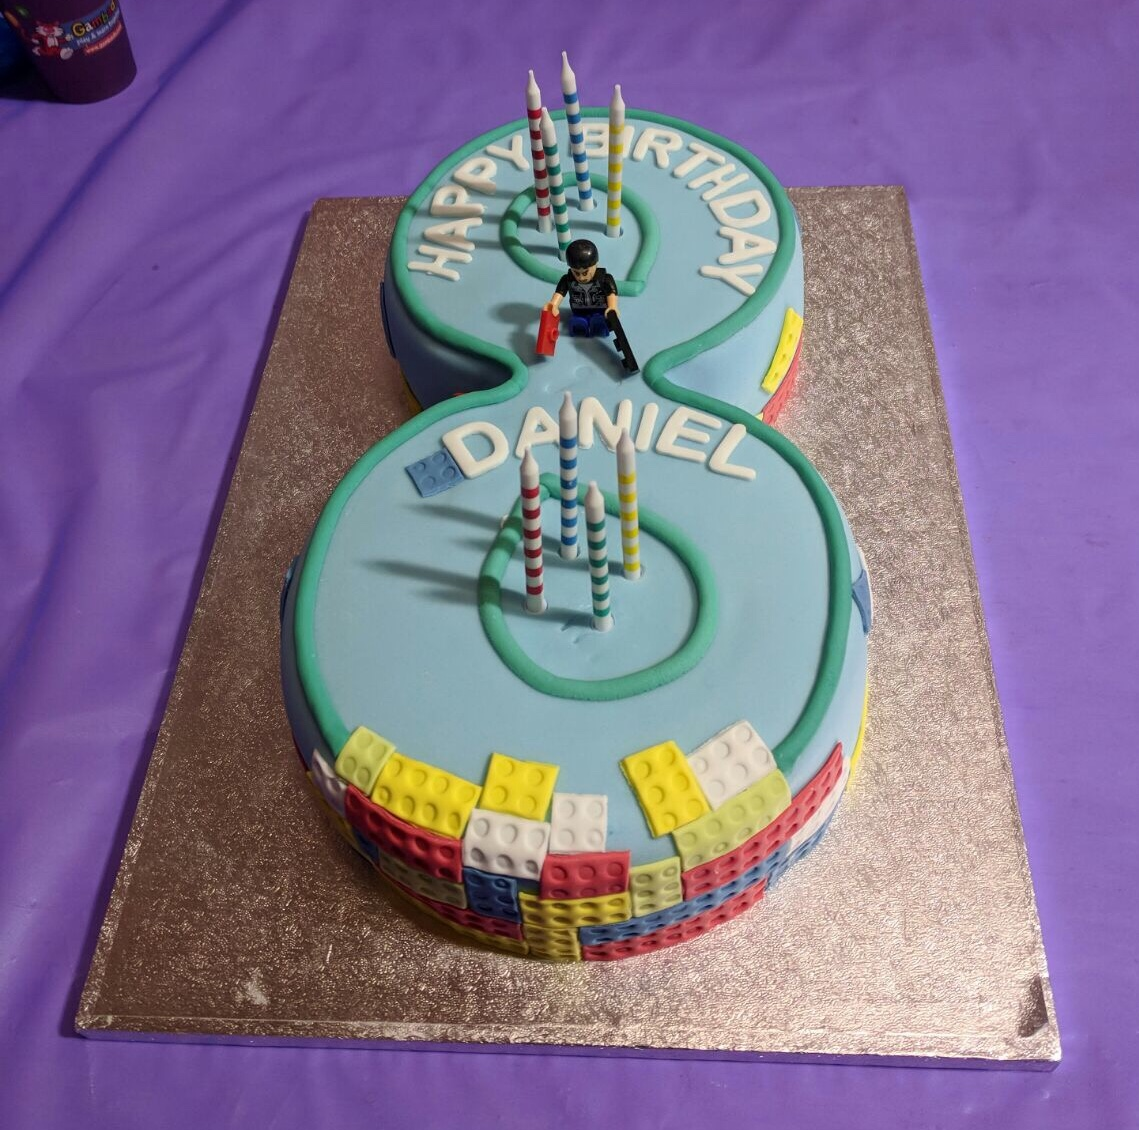 Number 8 birthday cake